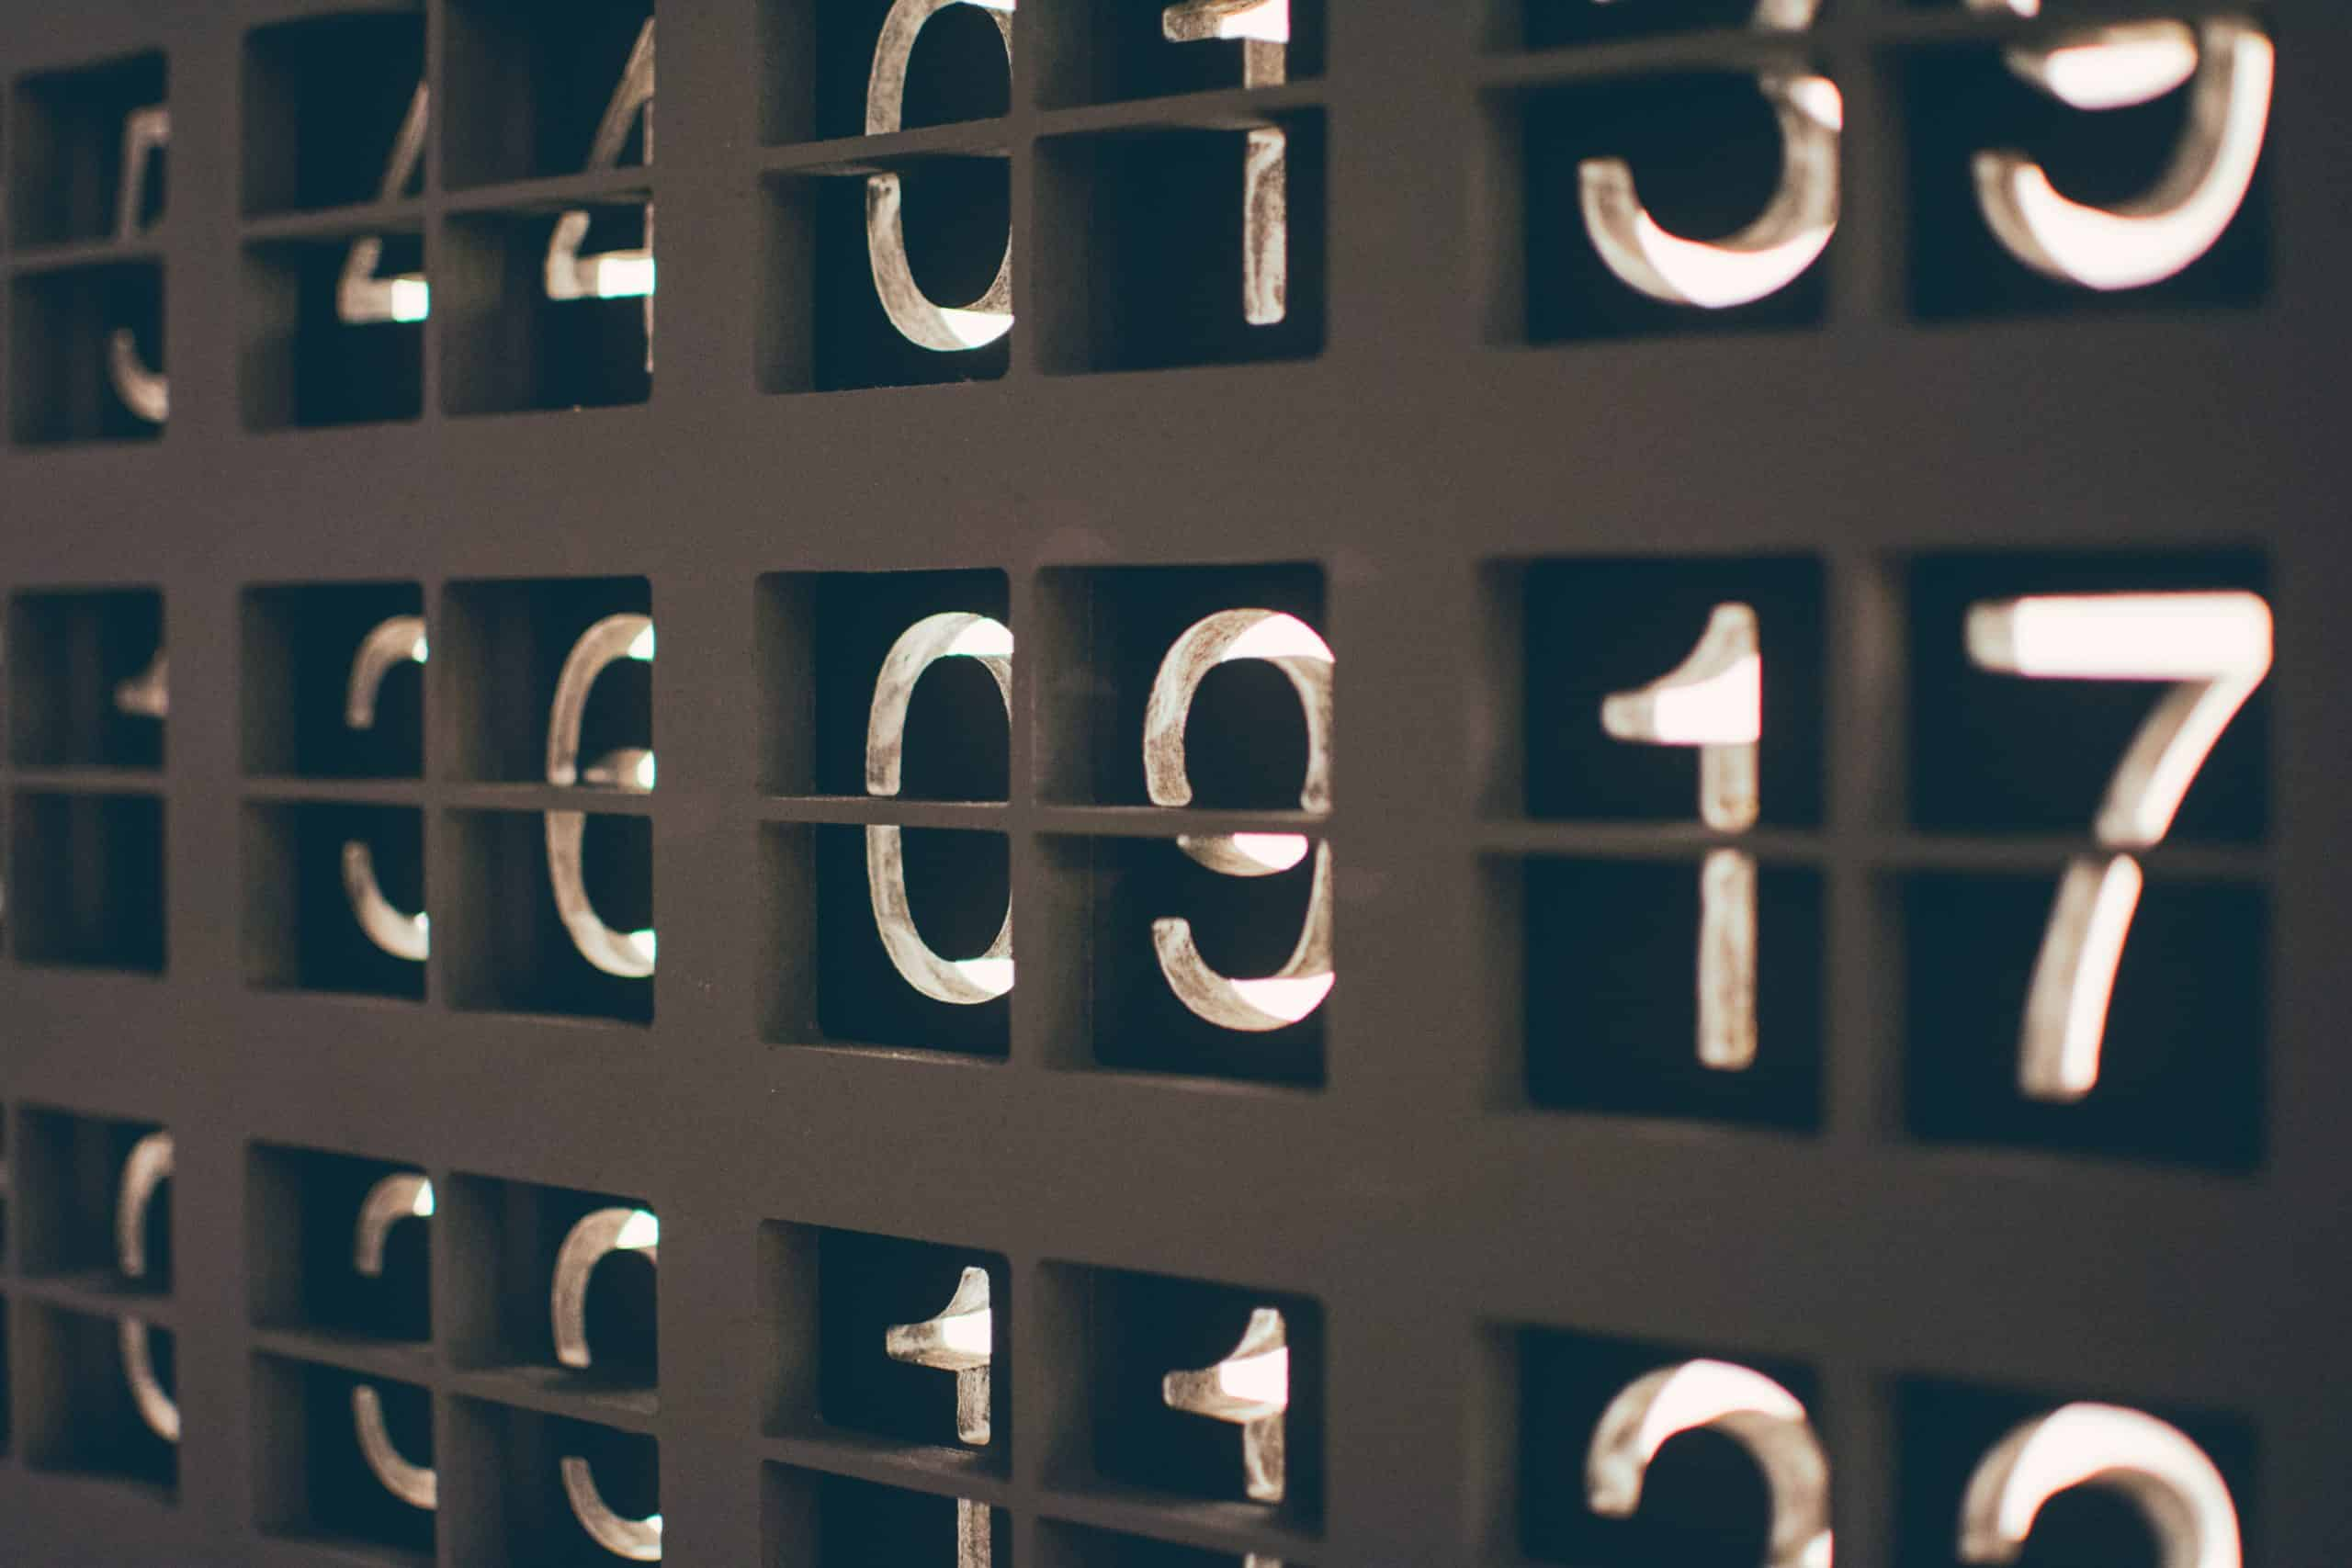 How to Guess a Number With Mentalism